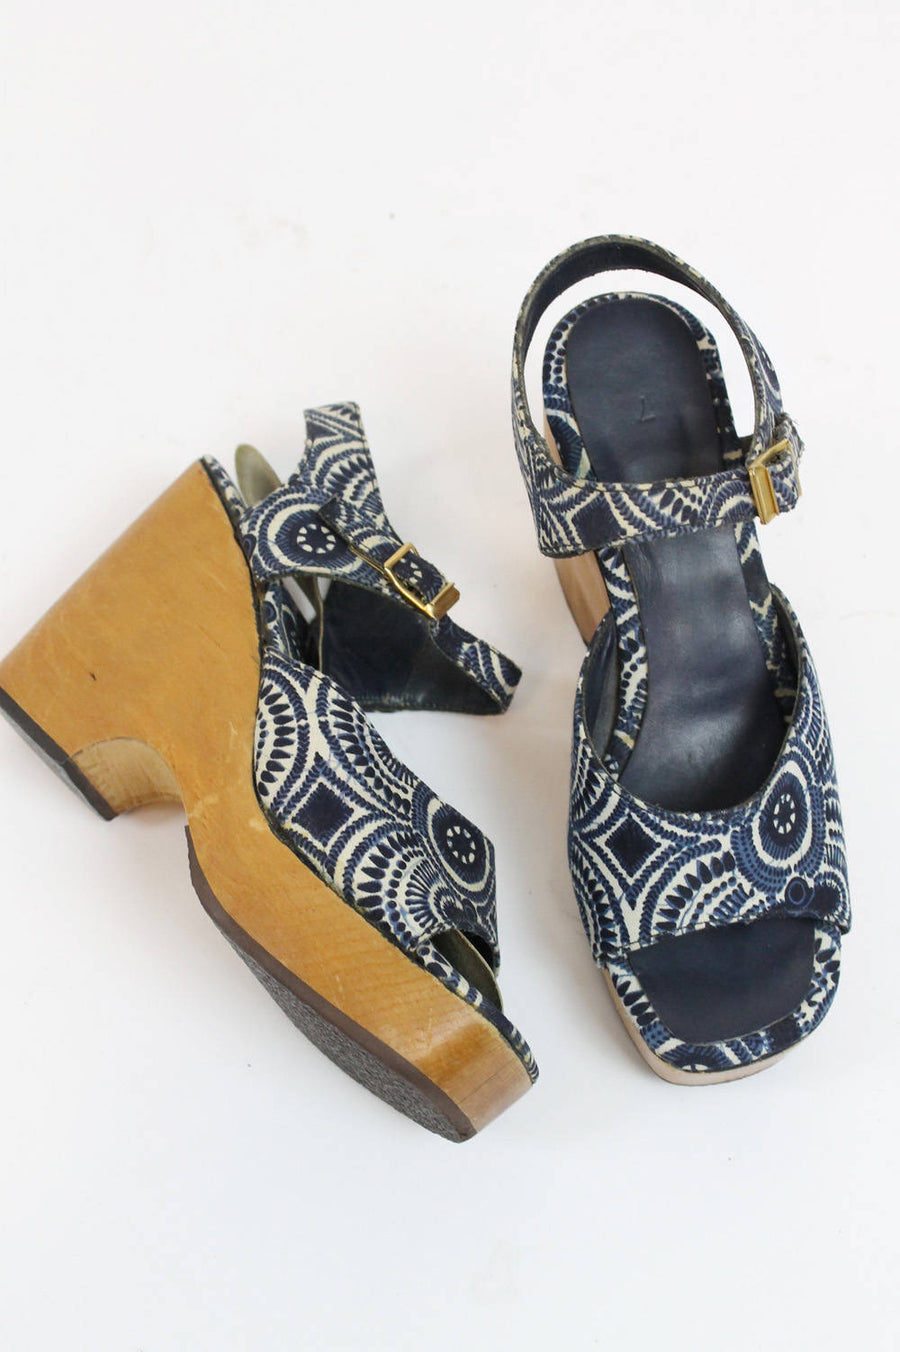 1970s Bare Trap wood wedges size 7 us | vintage batik sandals platforms